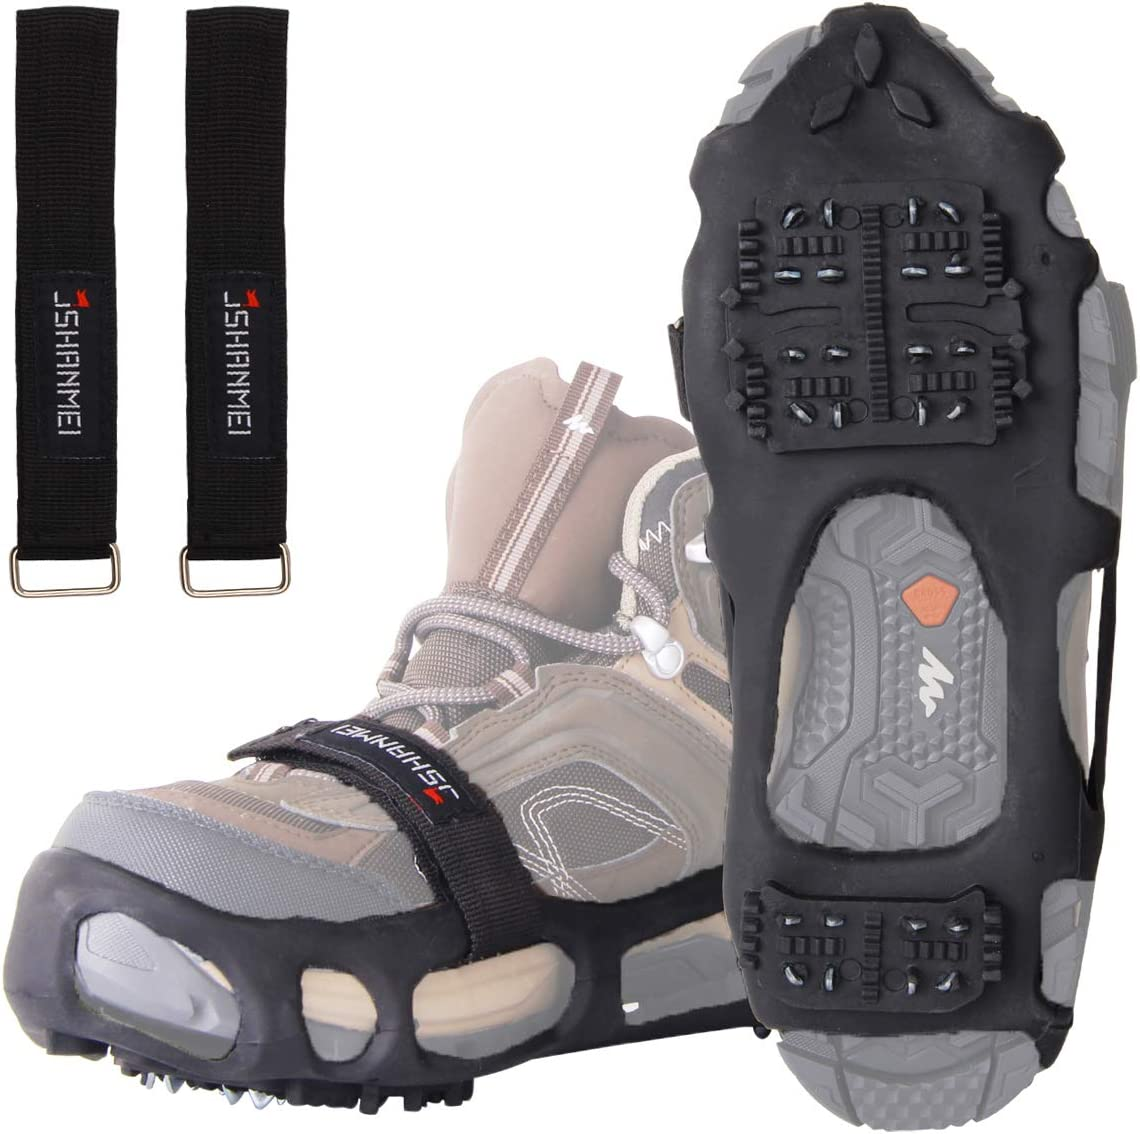 Ice Cleats 220 mm-290 mm Traction Cleats Grippers Non-Slip Over Shoe//Boot Rubber Spikes Crampons Anti Slip Walk Traction Cleats for Walking on Snow and Ice